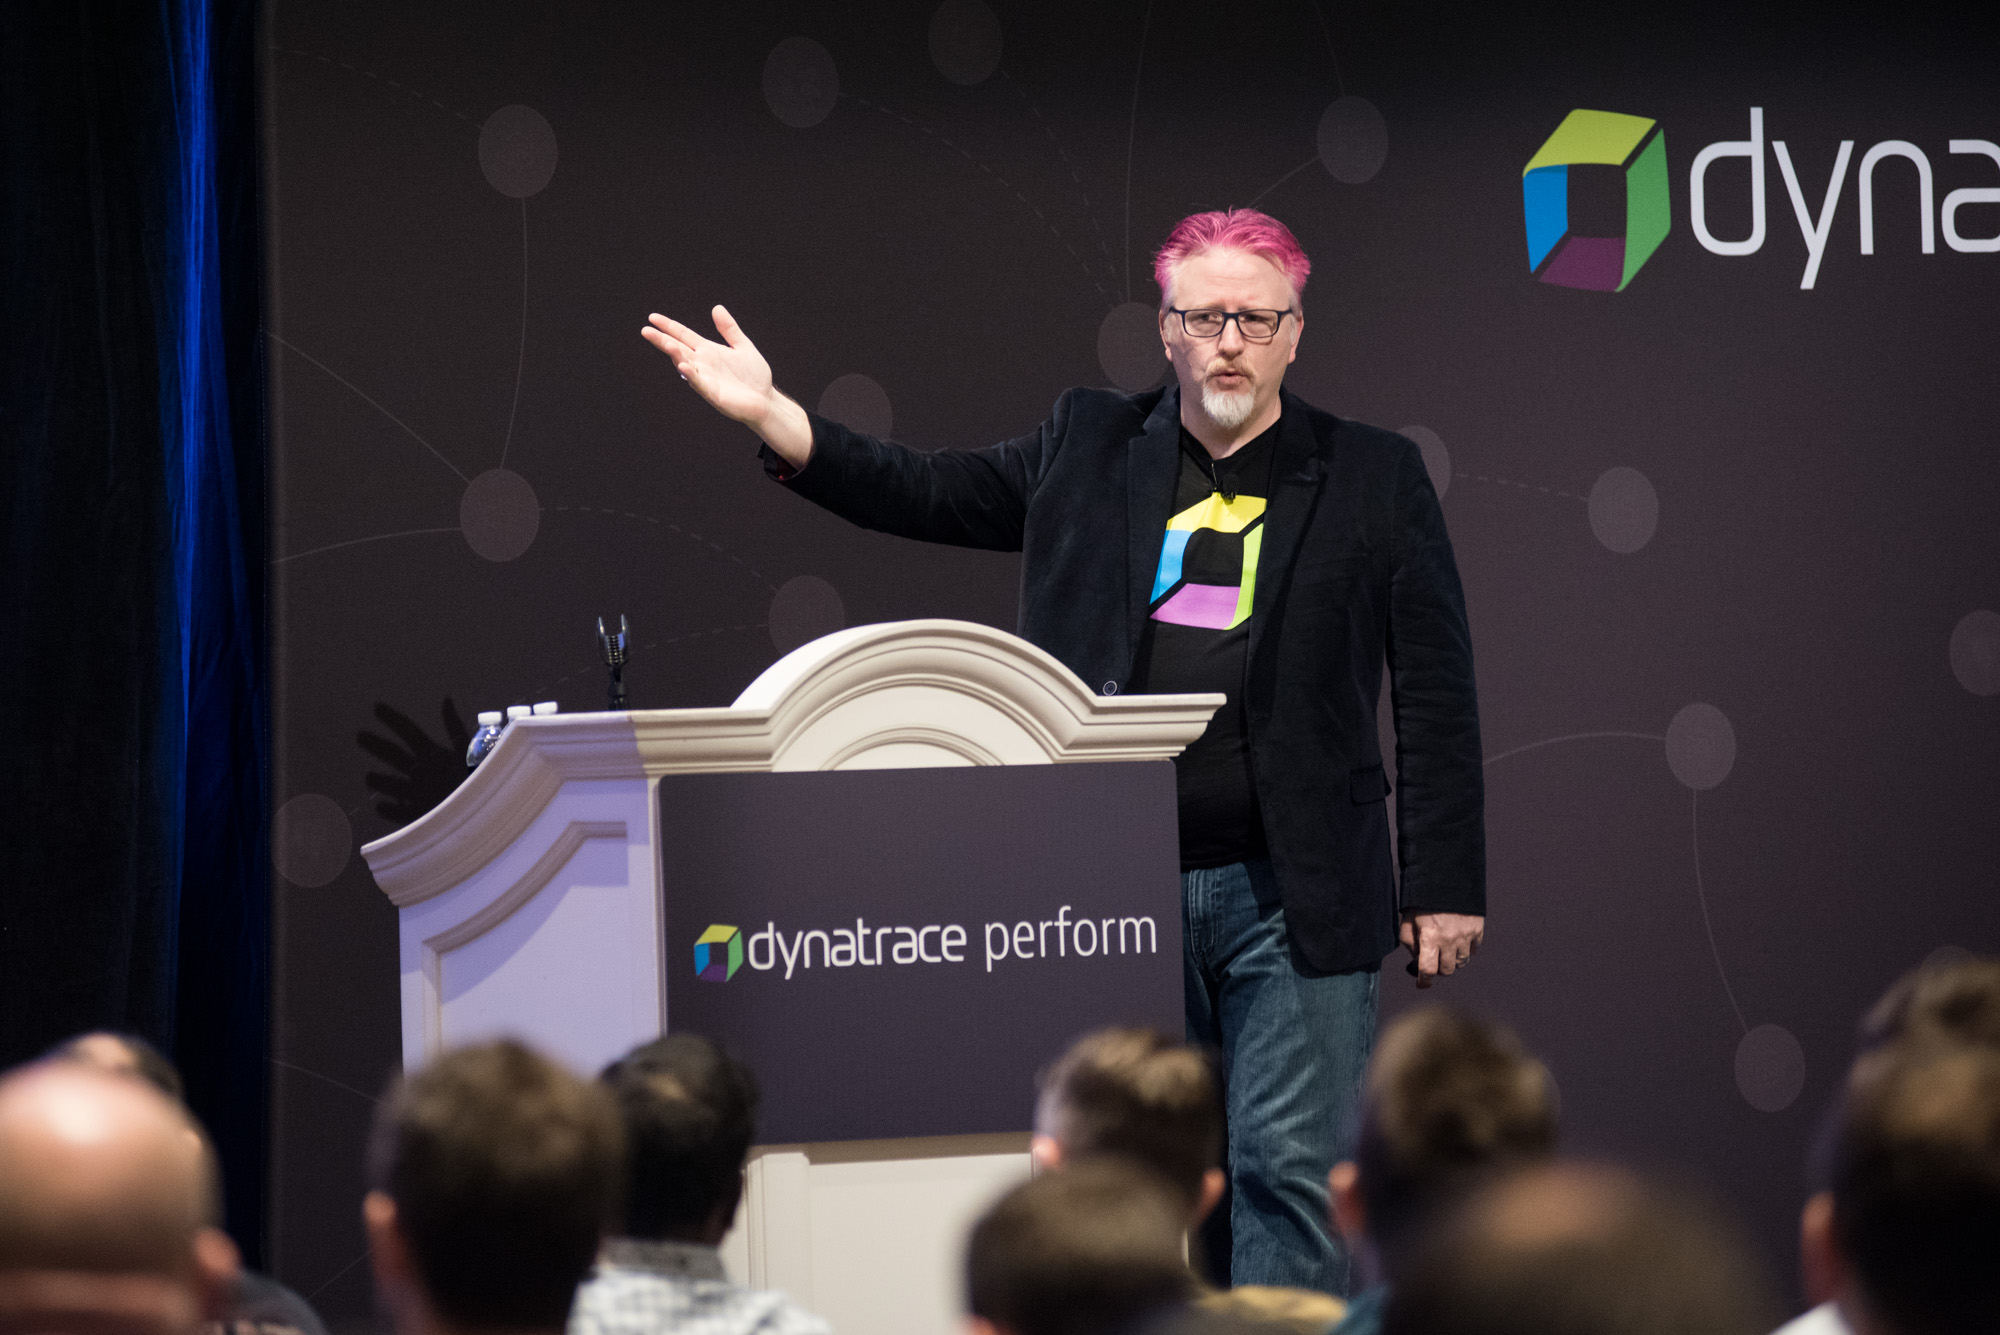 PerfBytes presenting at perform 2018